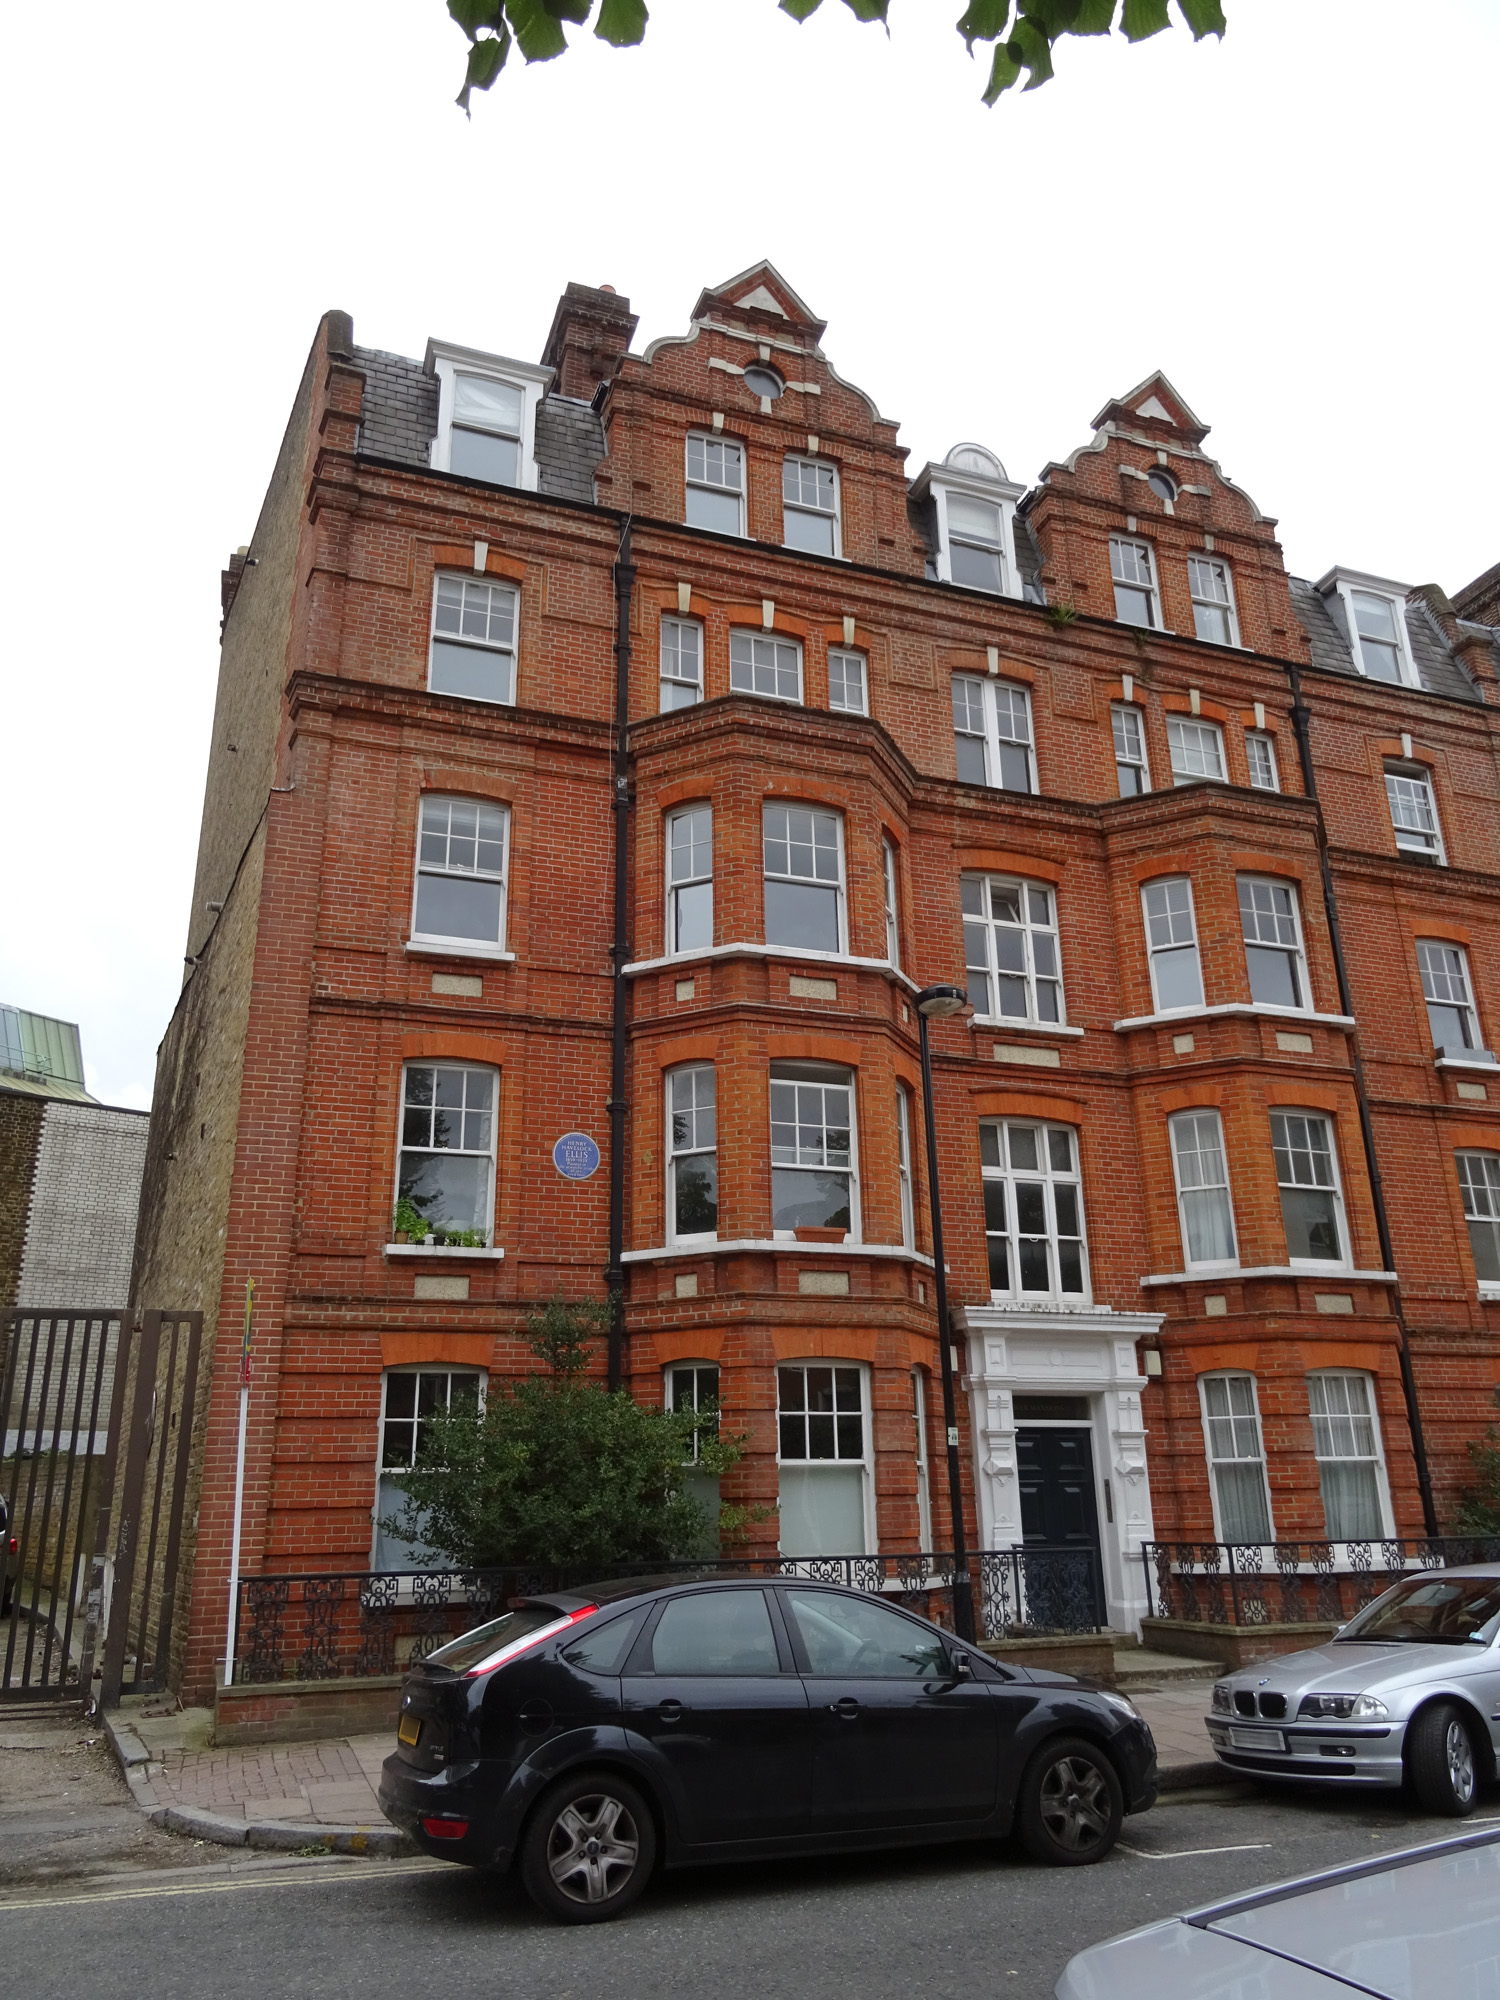 File Henry Havelock Ellis 14 Dover Mansions Canterbury Crescent Brixton London Sw9 7qf Jpg Wikimedia Commons